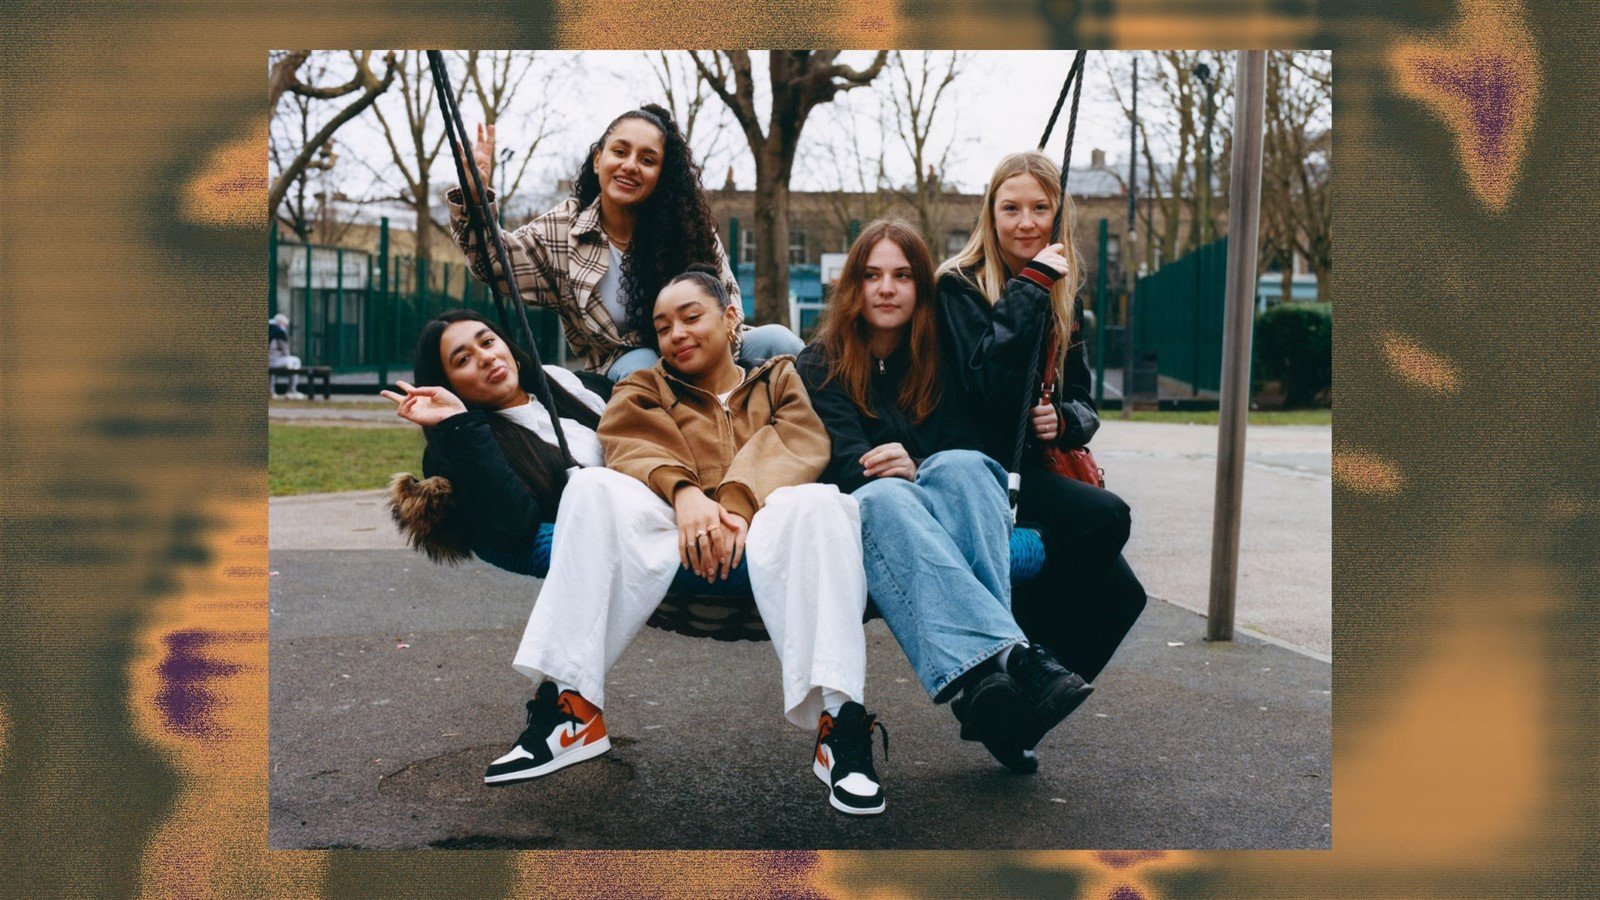 How do London's teenage girls see the future of the city?